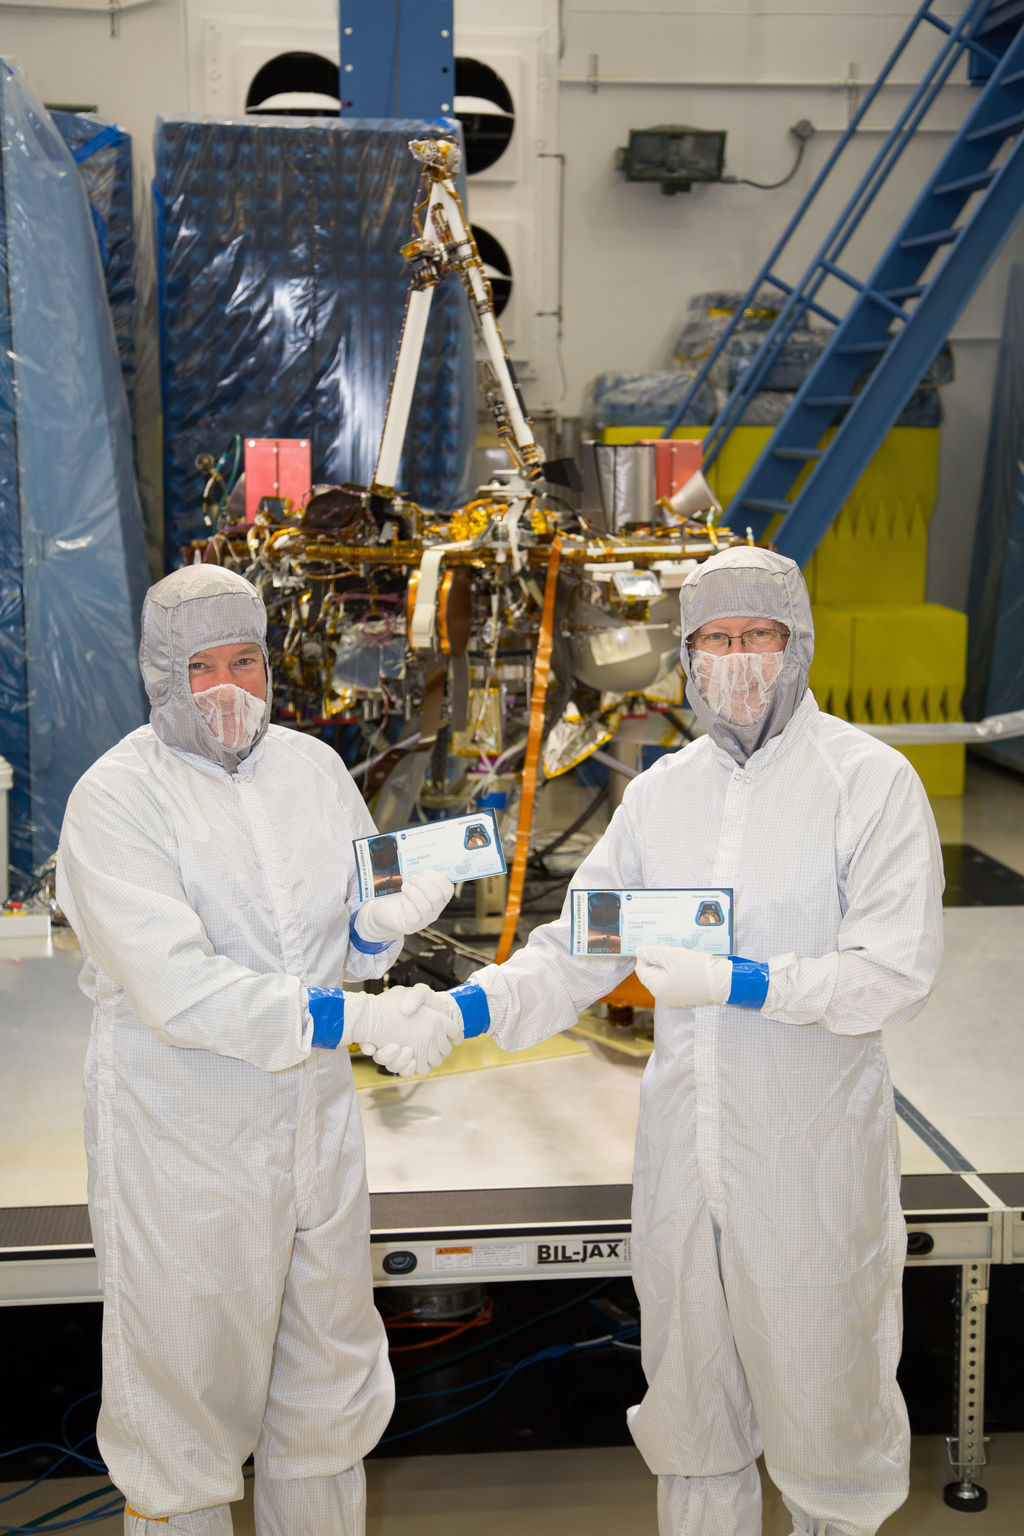 InSight project manager Tom Hoffman and principal investigator Bruce Banerdt pose with their